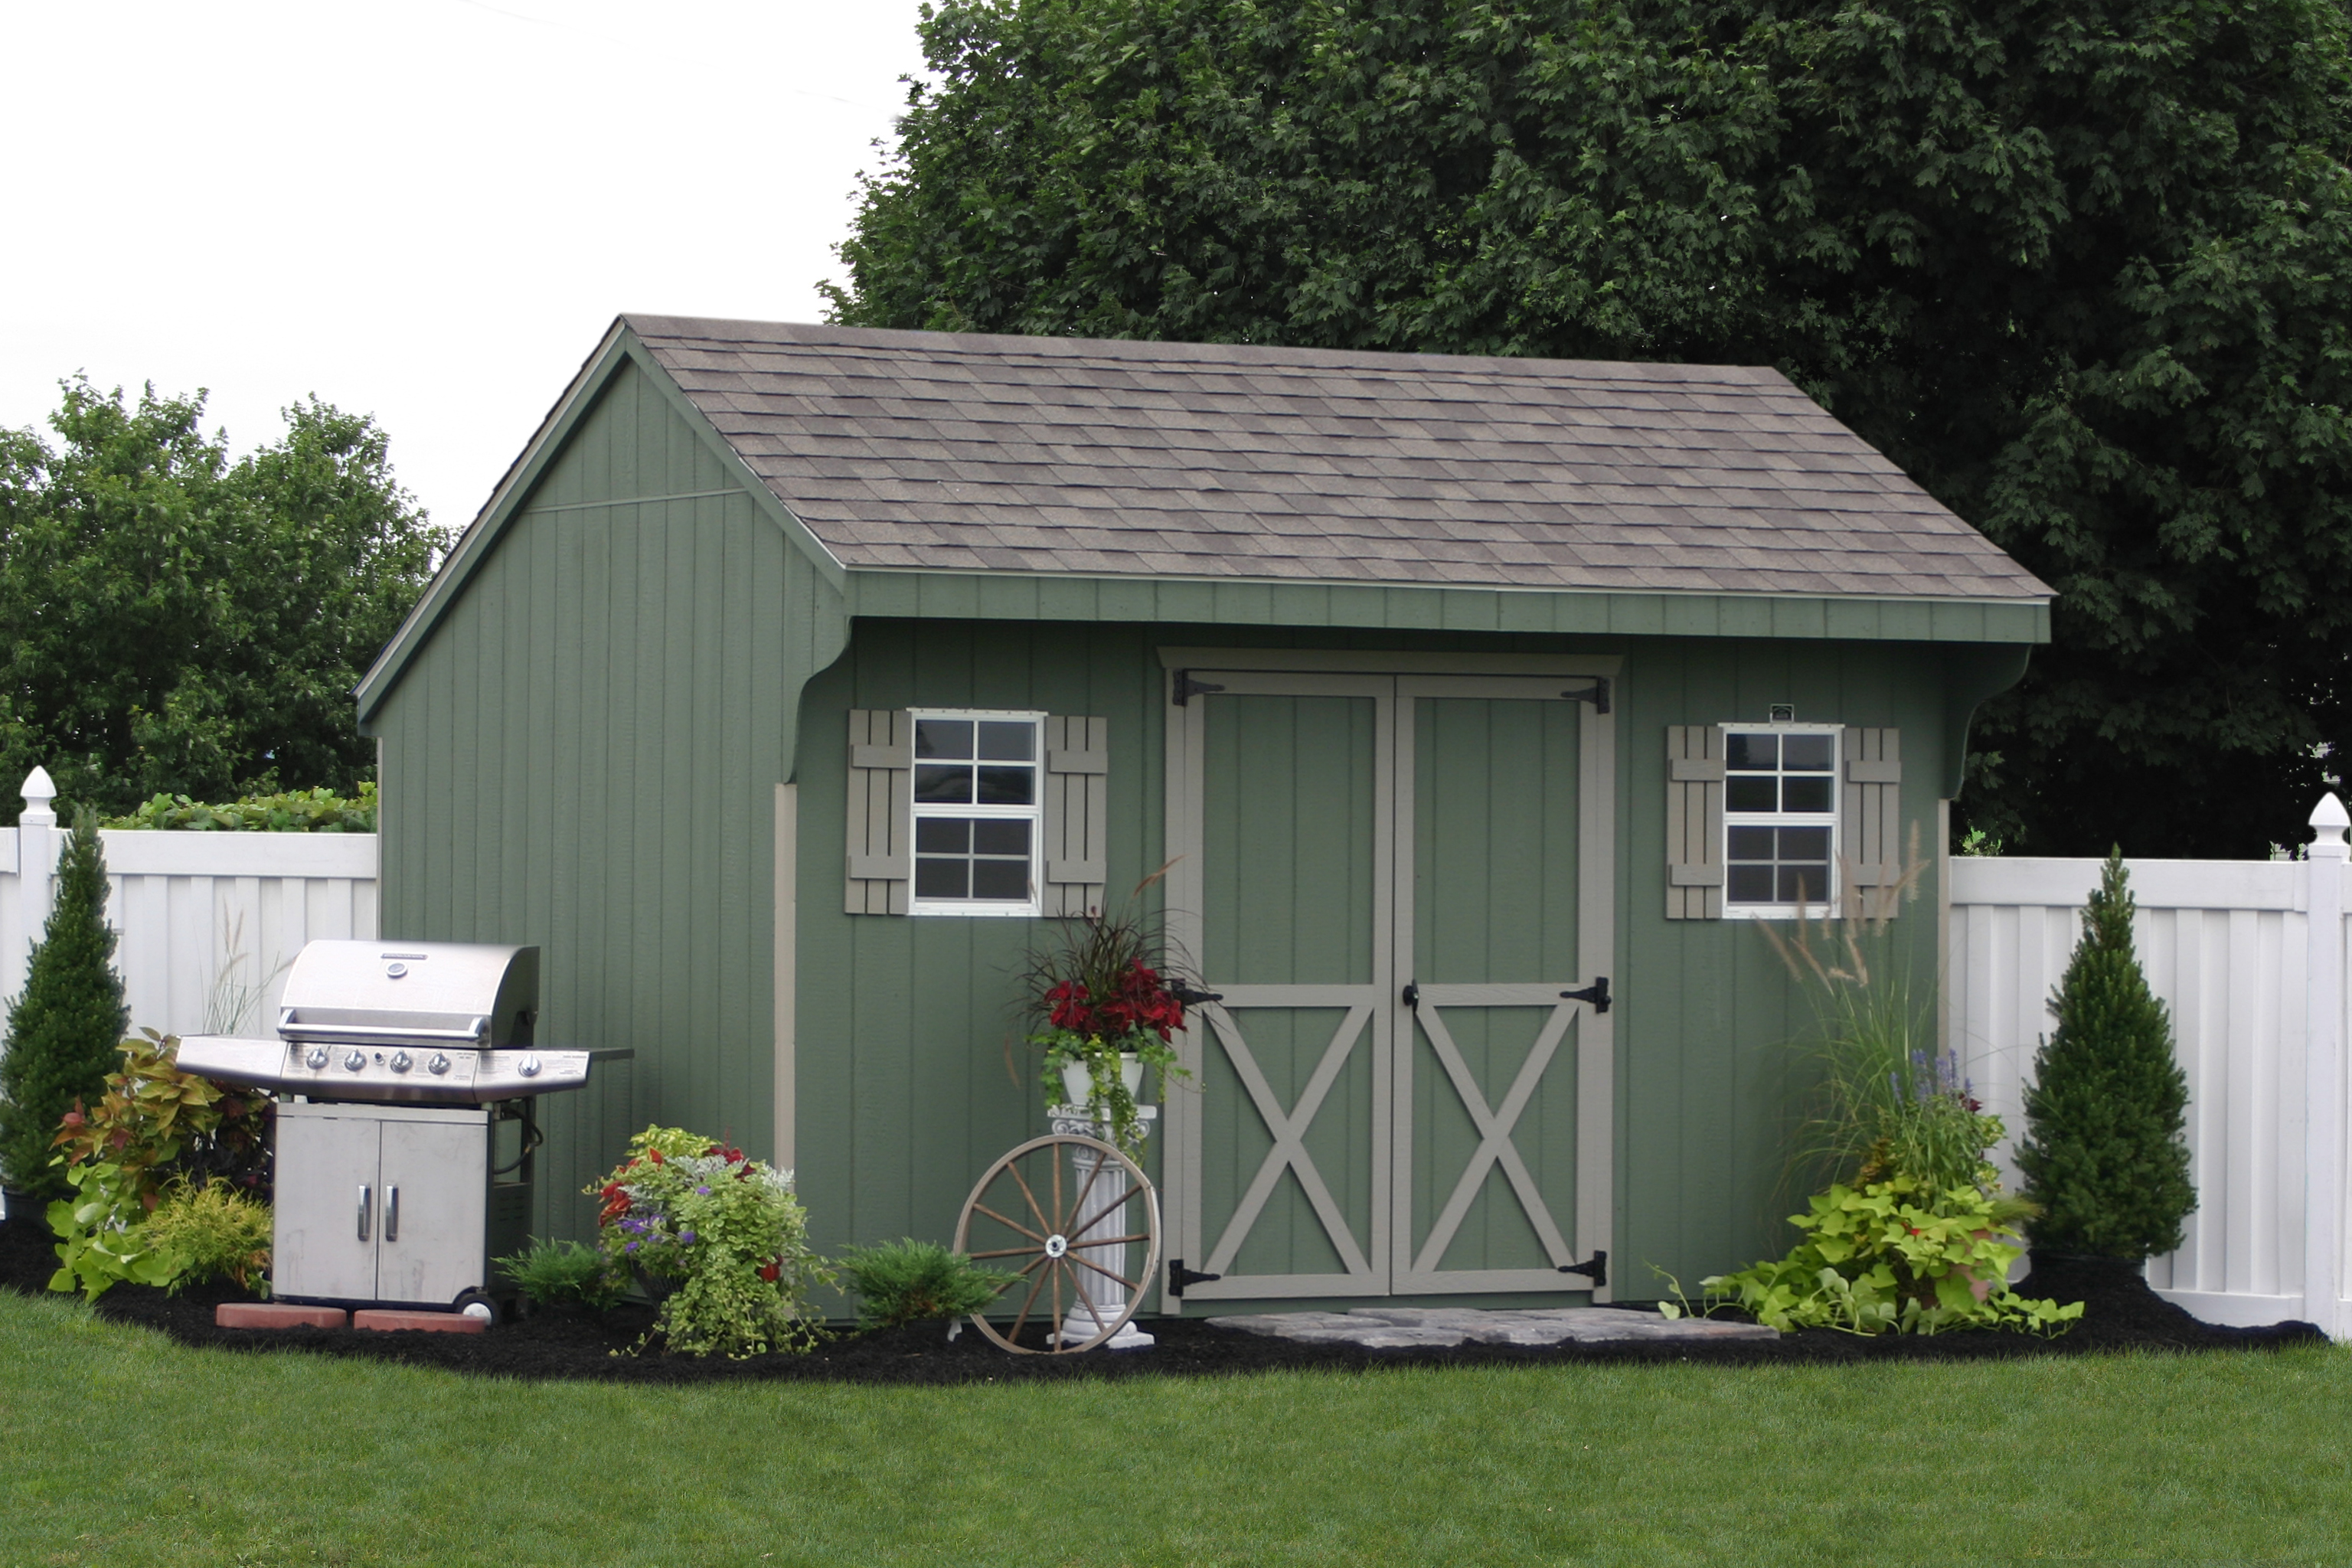 Amish Garages In Pa : Assemble your own amish built storage shed or car garage